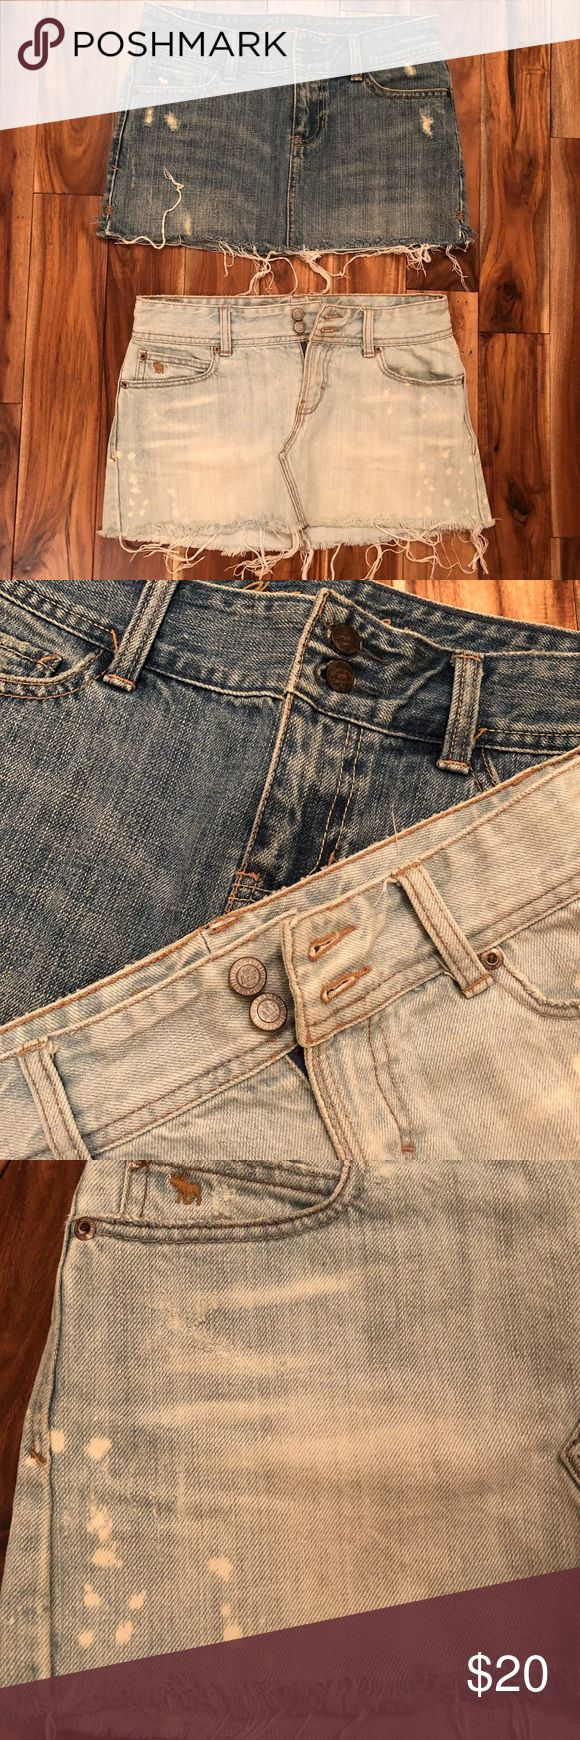 Two denim mini skirts by Abercrombie size xs Not one but two jean skirts from Abercrombie and Fitch. One is a medium to dark shade and the other is light denim. Super cute in summertime or wear with leggings/tights! Size xs Abercrombie & Fitch Skirts Mini